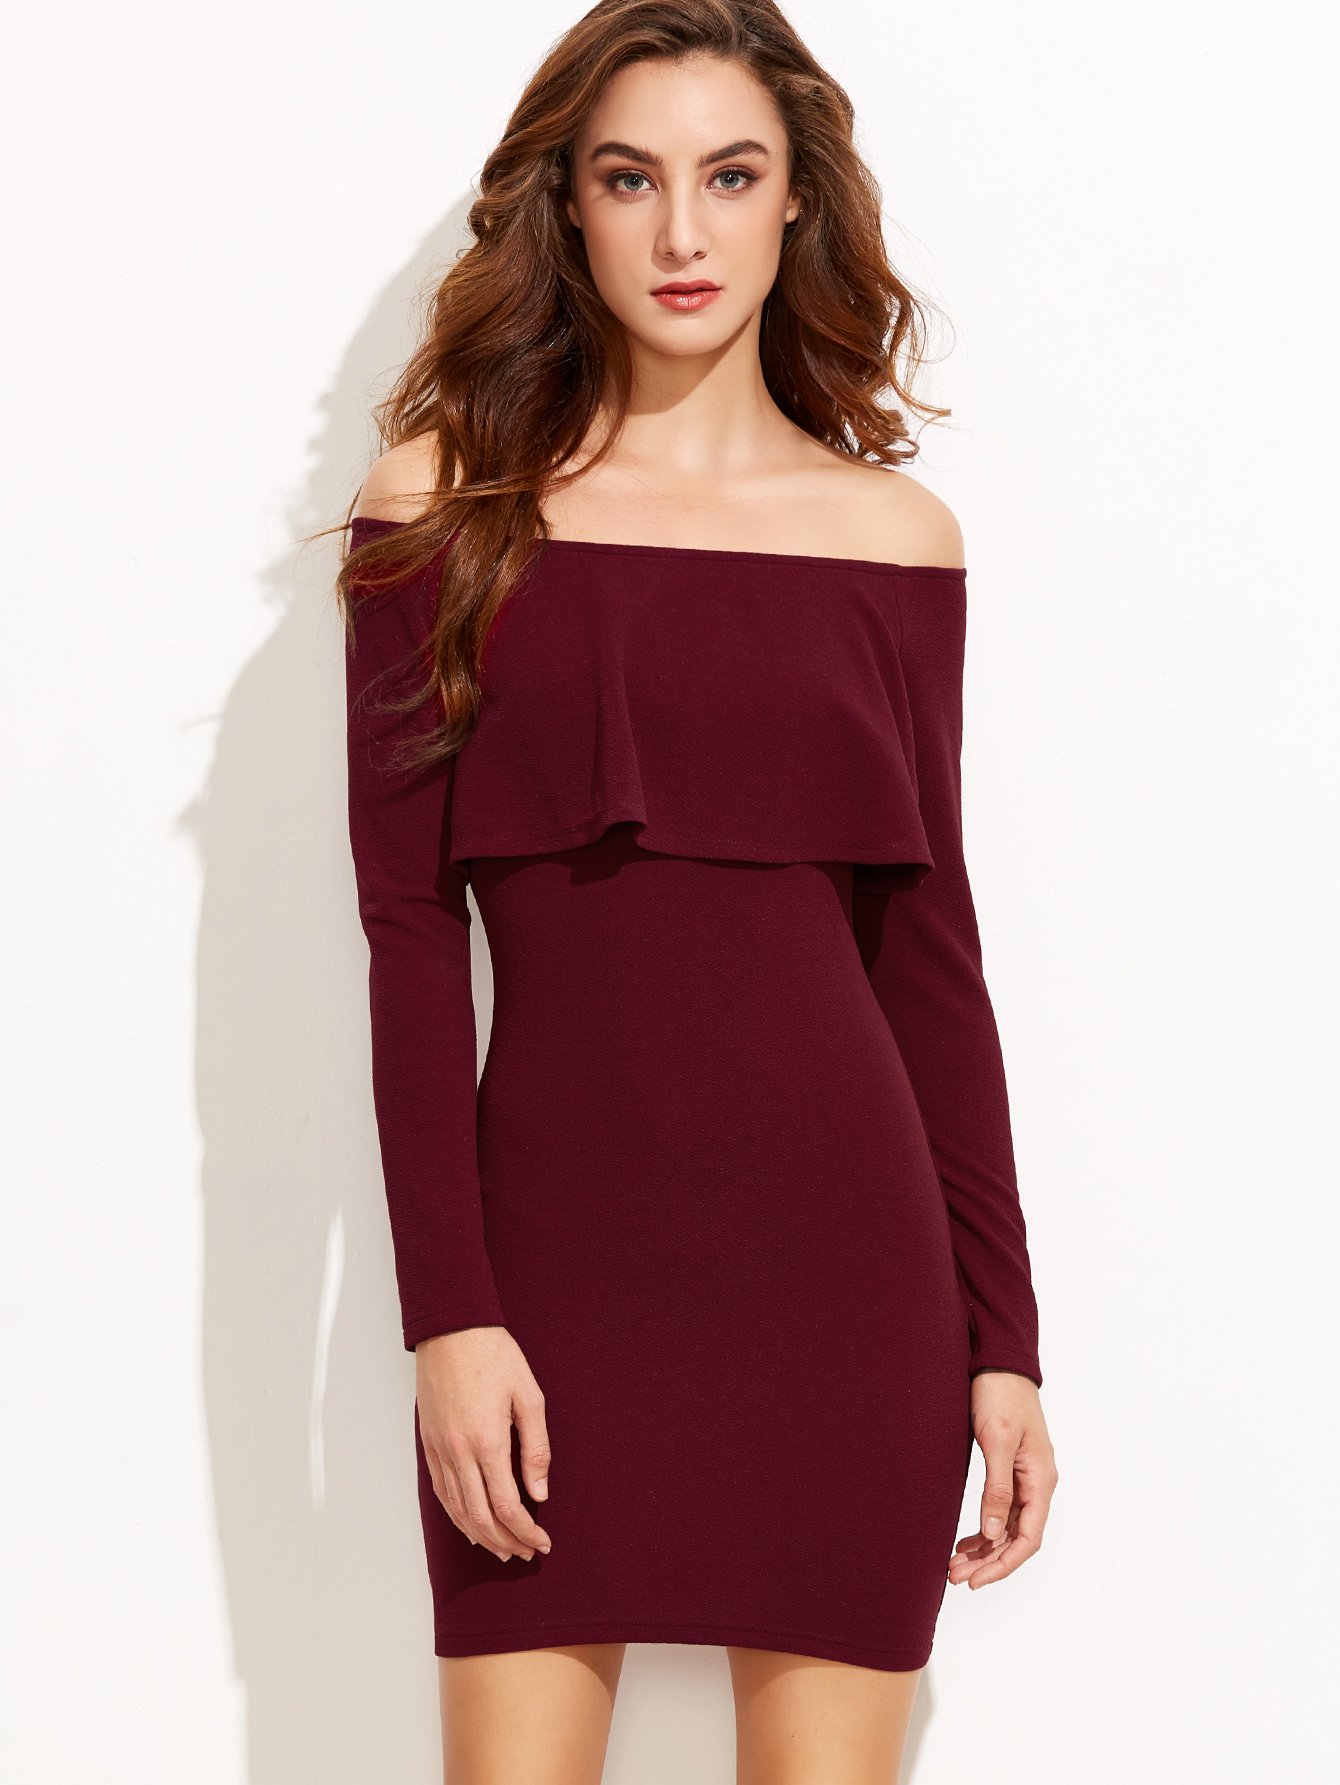 d157e0b8d9f7a Women's Burgundy Mini Dress Ruffle Off Shoulder Bodycon Outfit Long ...